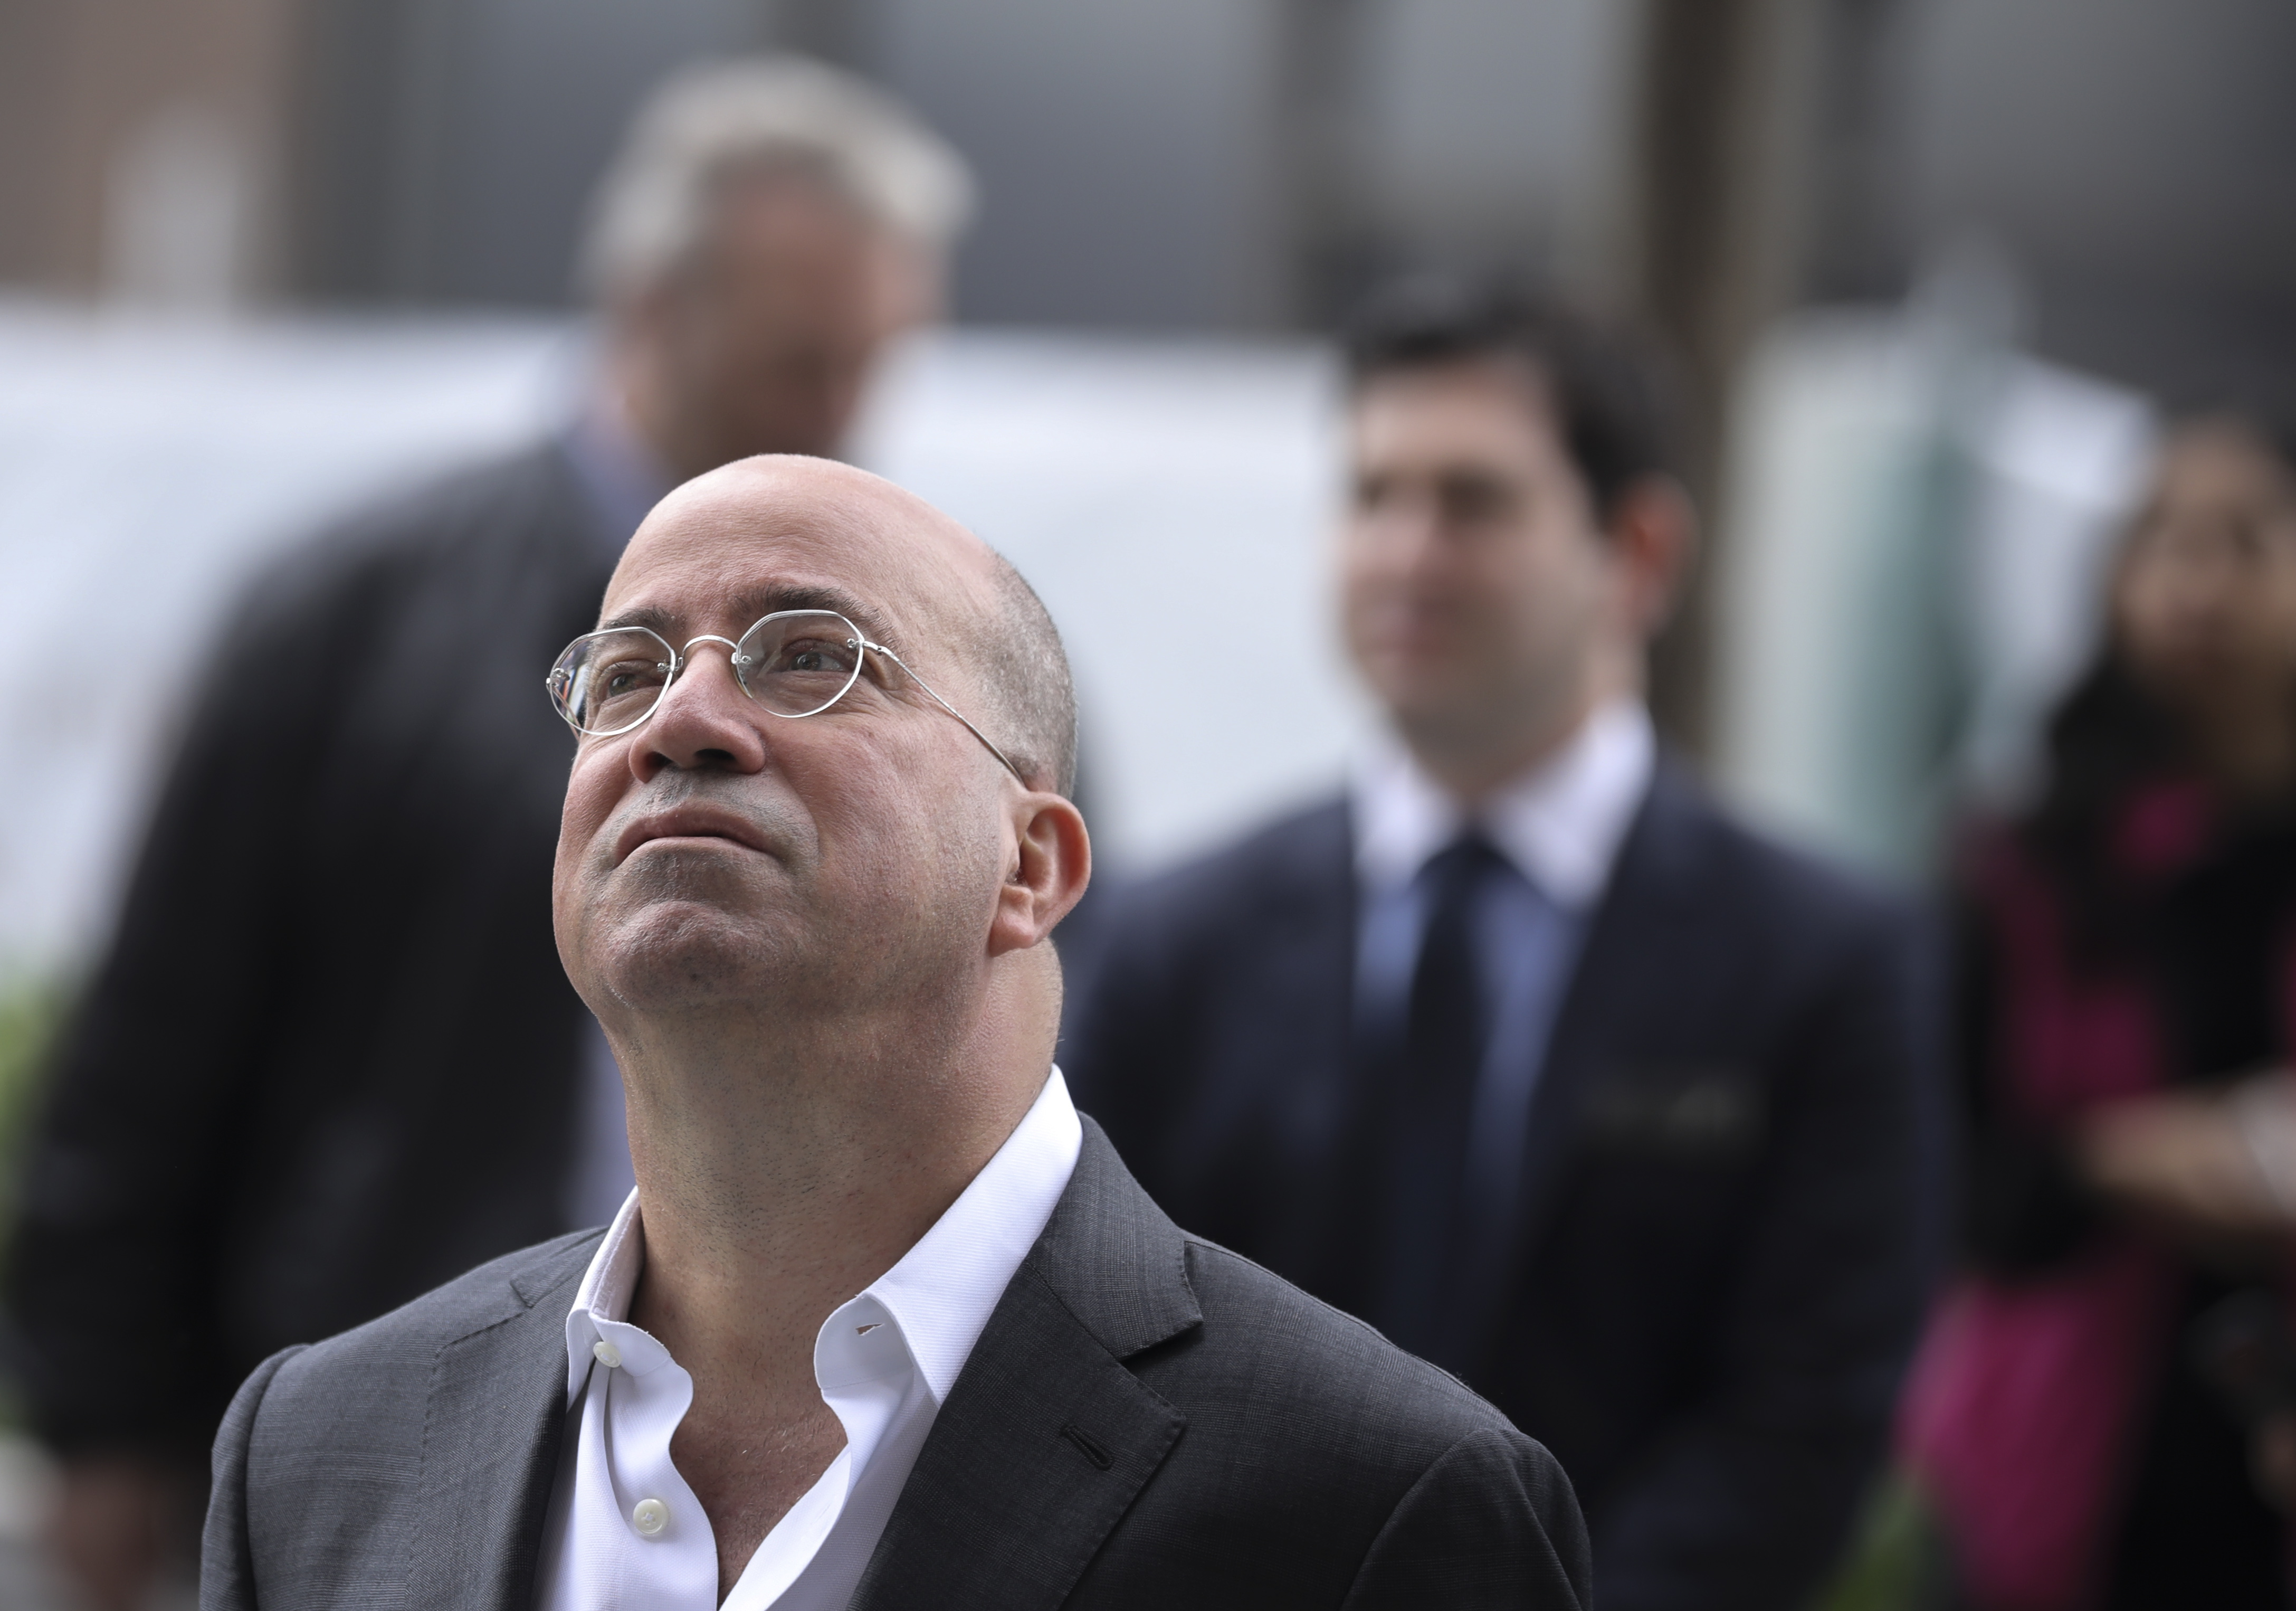 President of CNN Jeff Zucker attends the grand opening of phase one of the Hudson Yards development on the West Side of Midtown Manhattan (Photo by Drew Angerer/Getty Images)